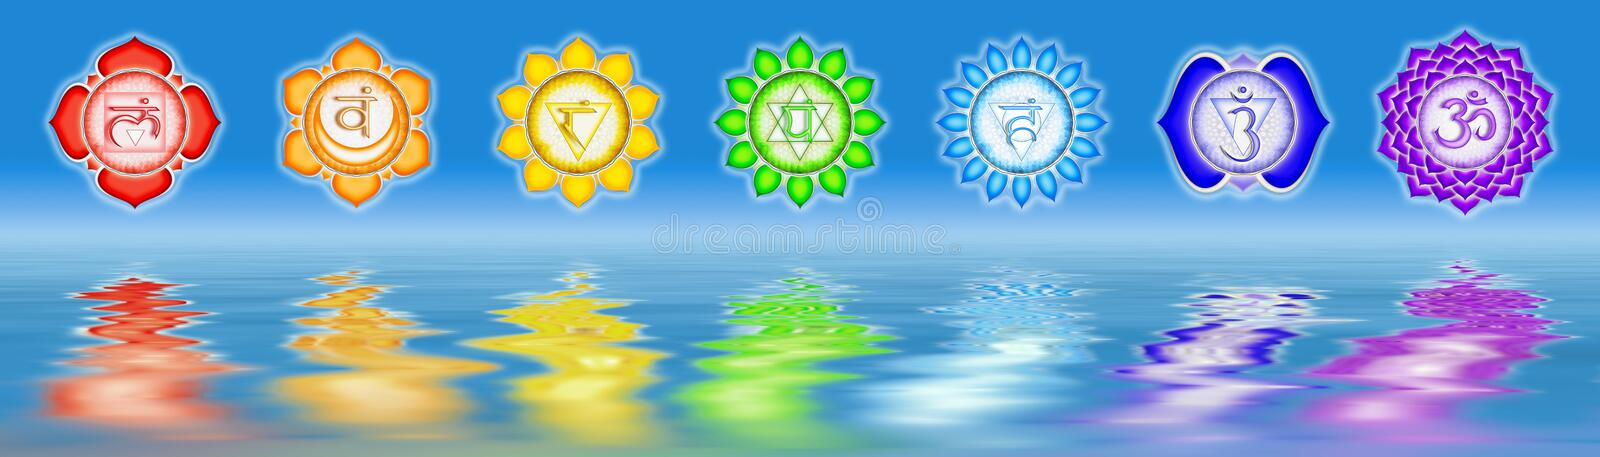 Sept la canalisation Chakras illustration stock